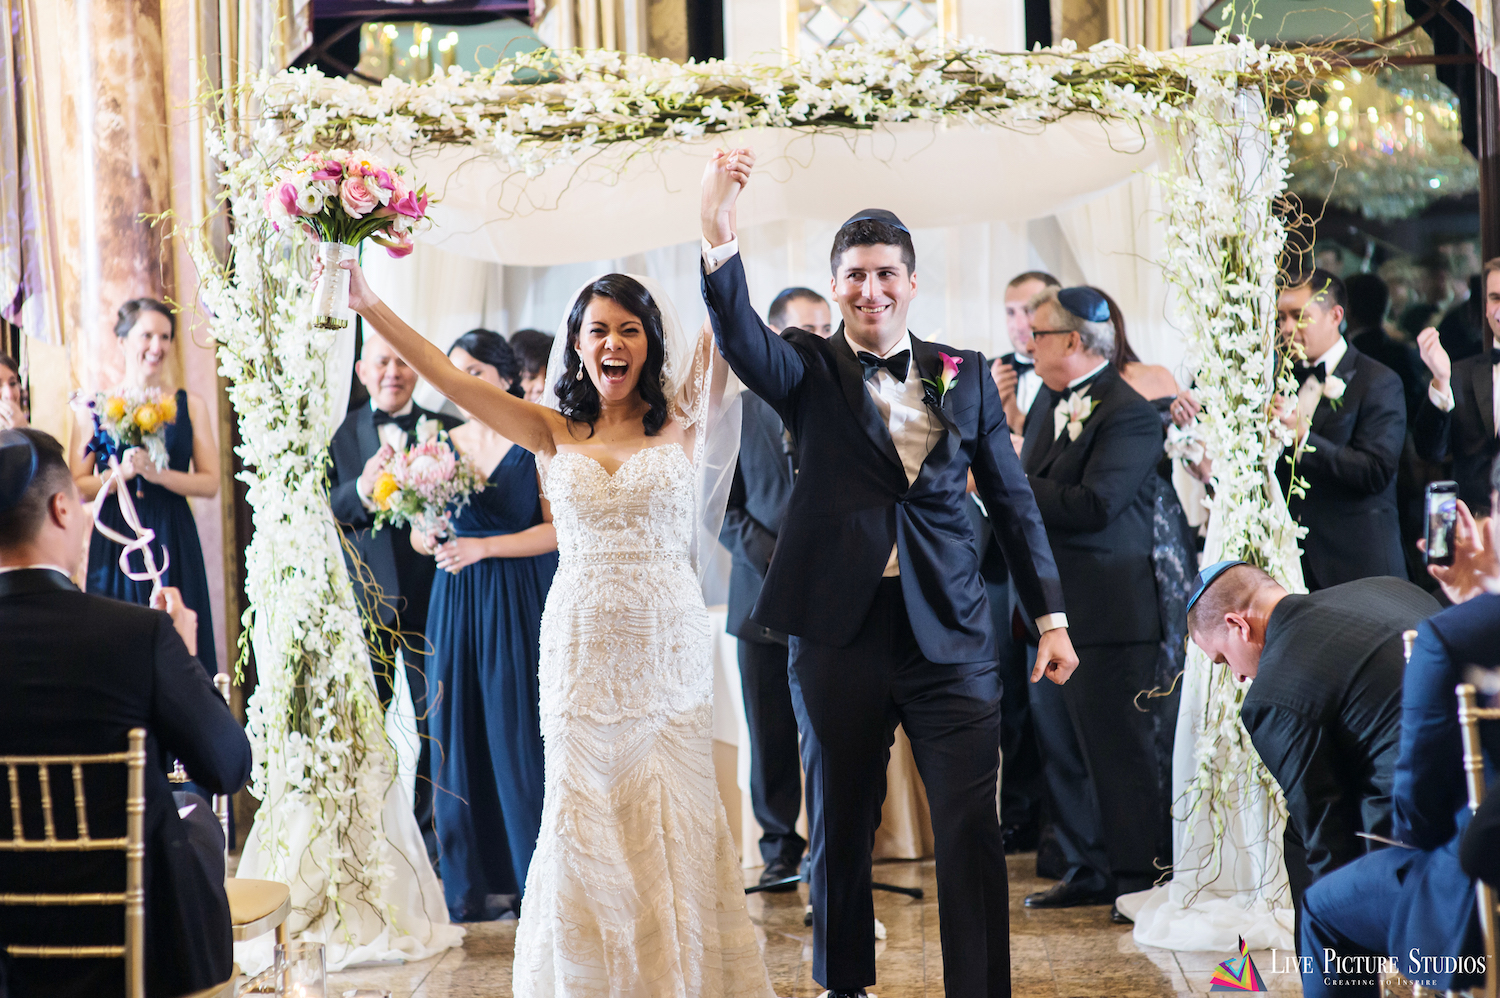 Our New Jersey Wedding Photographers Weigh in on the Surprise Ceremony Trend